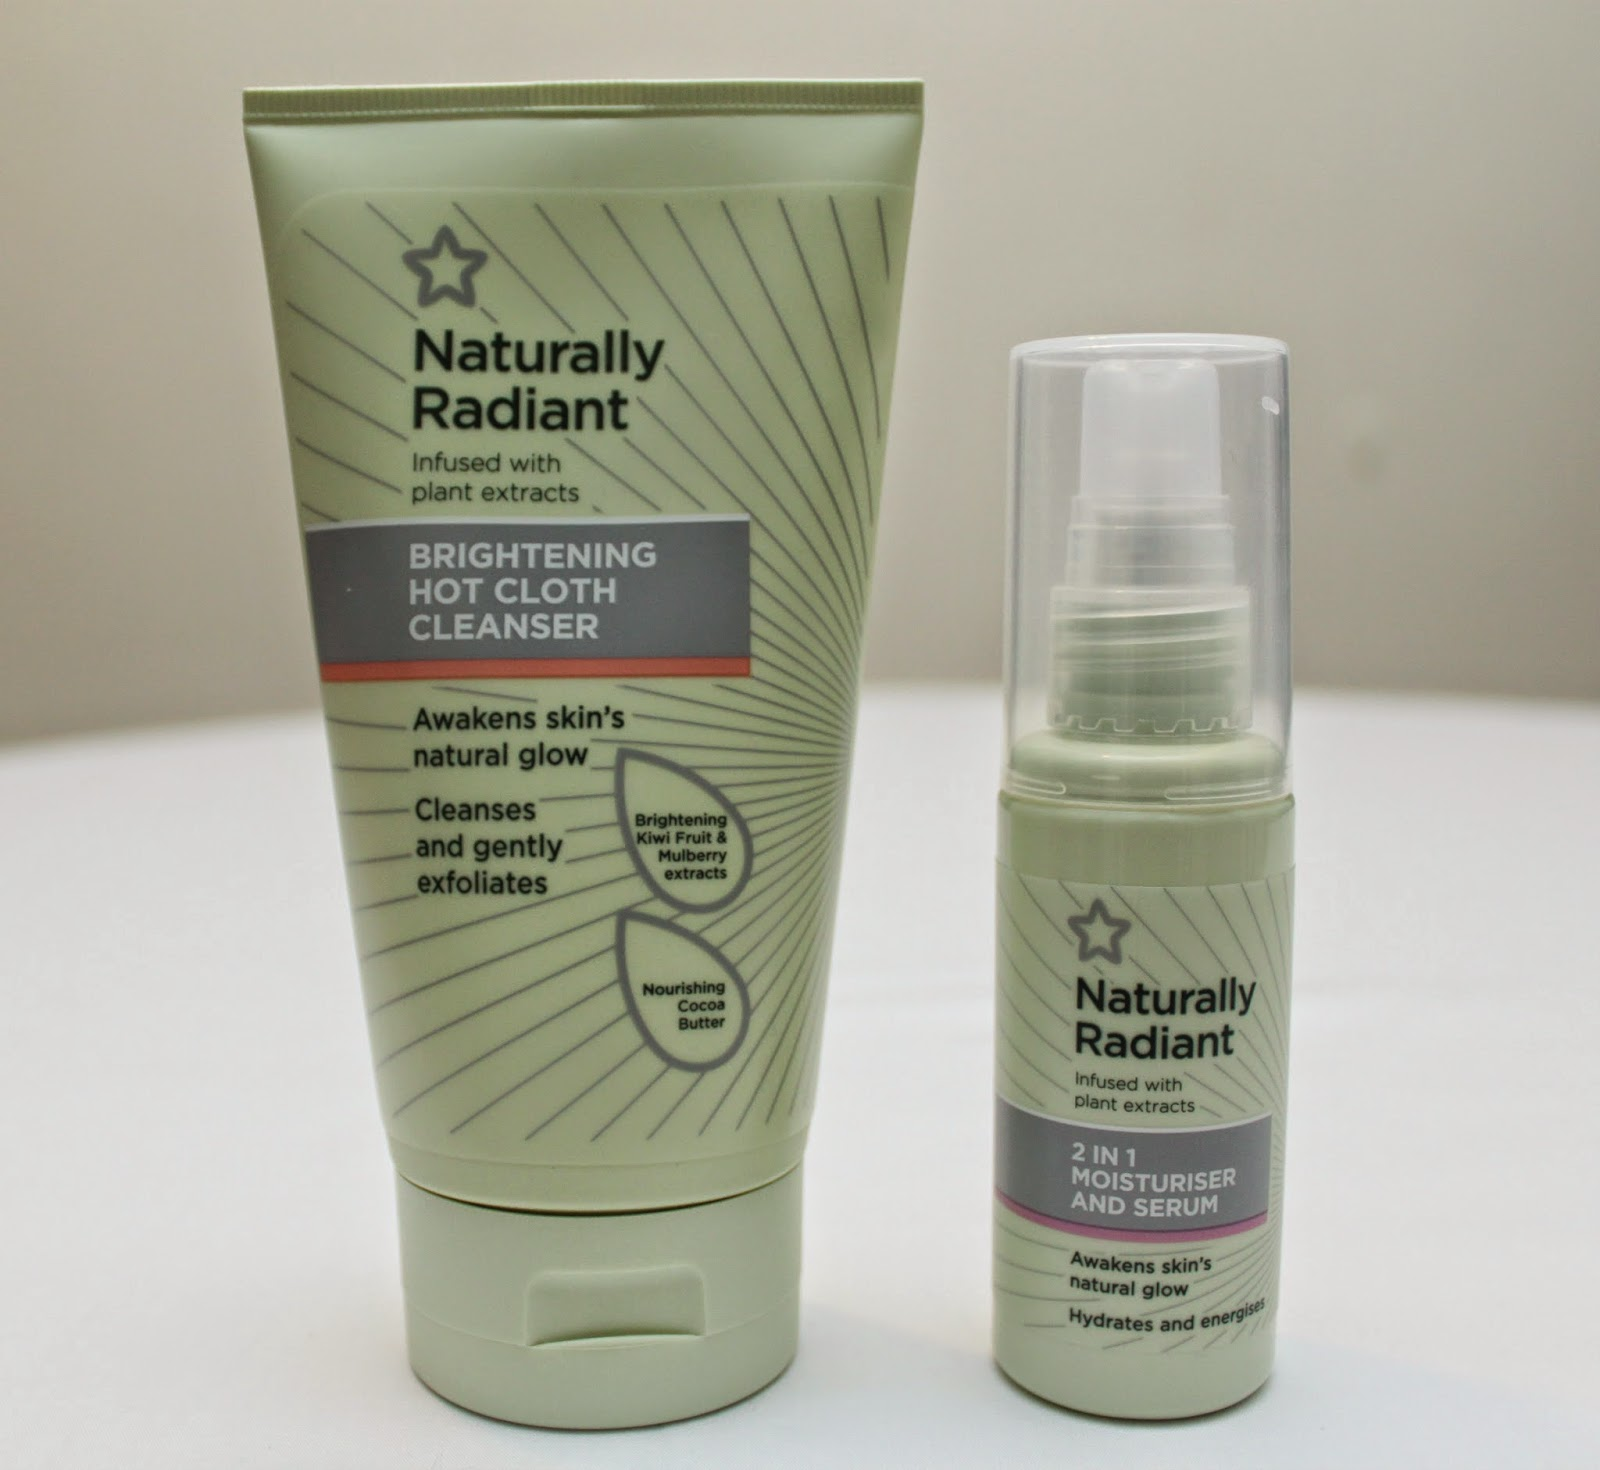 SUPERDRUG'S NATURALLY RADIANT SKINCARE